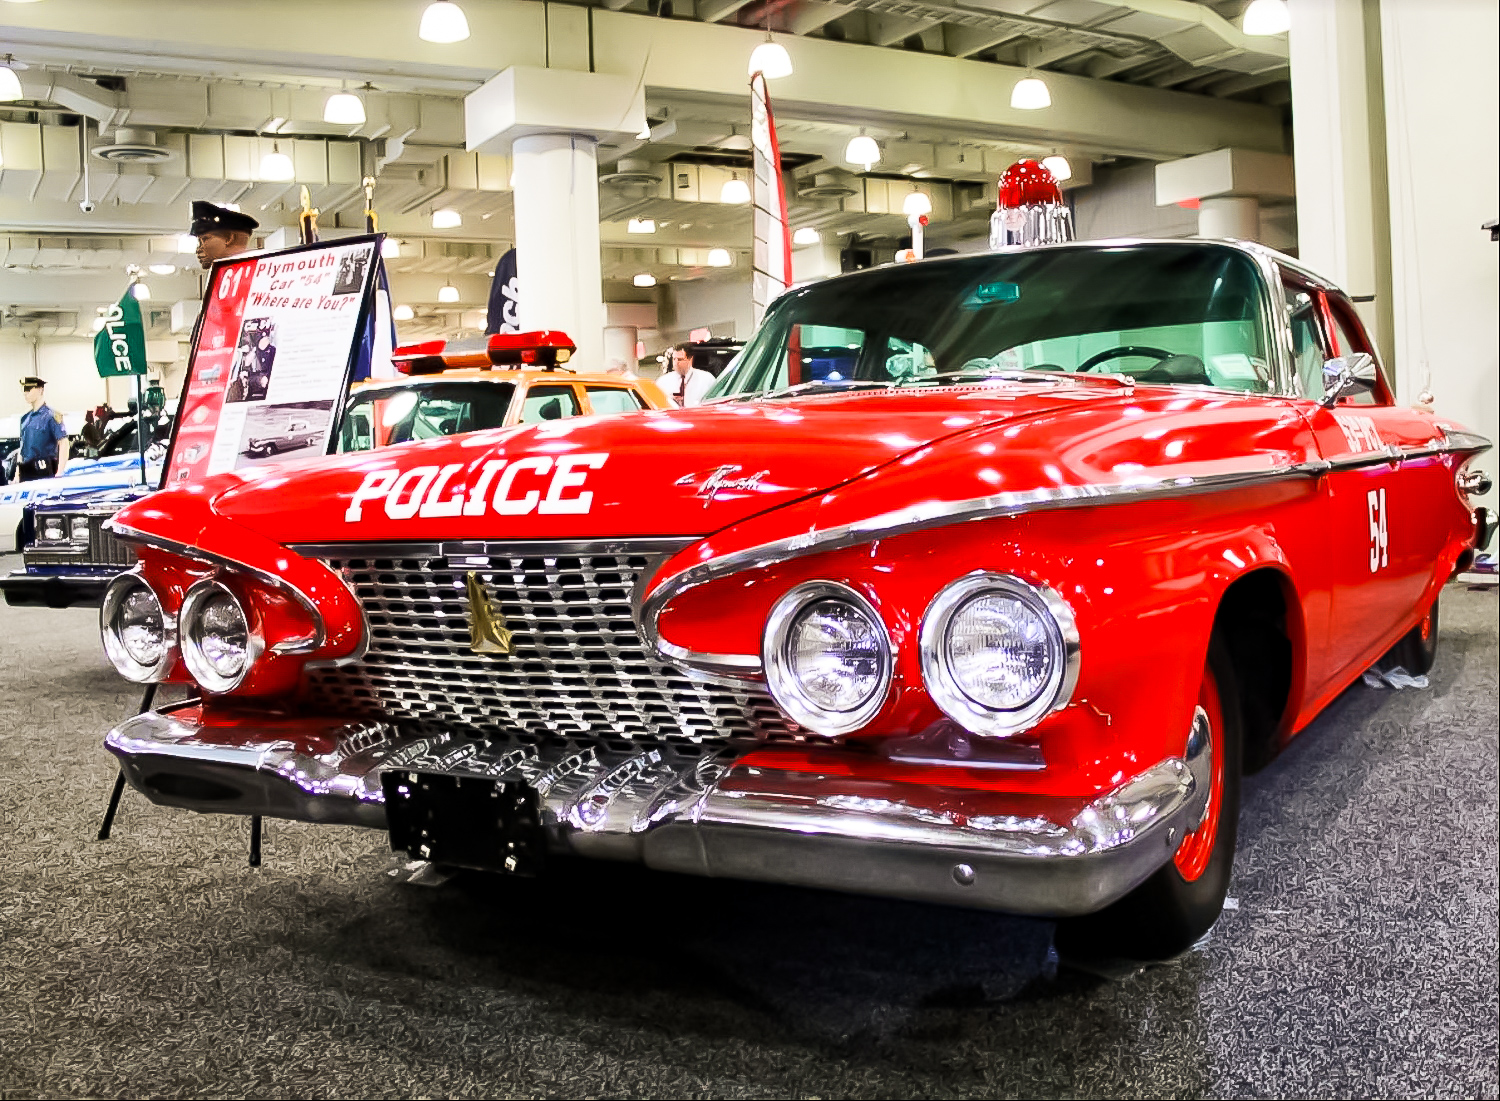 1961 PLYMOUTH SAVOY – The car was given a bright red paint job specifically to avoid any confusion with a real NYPD patrol car.